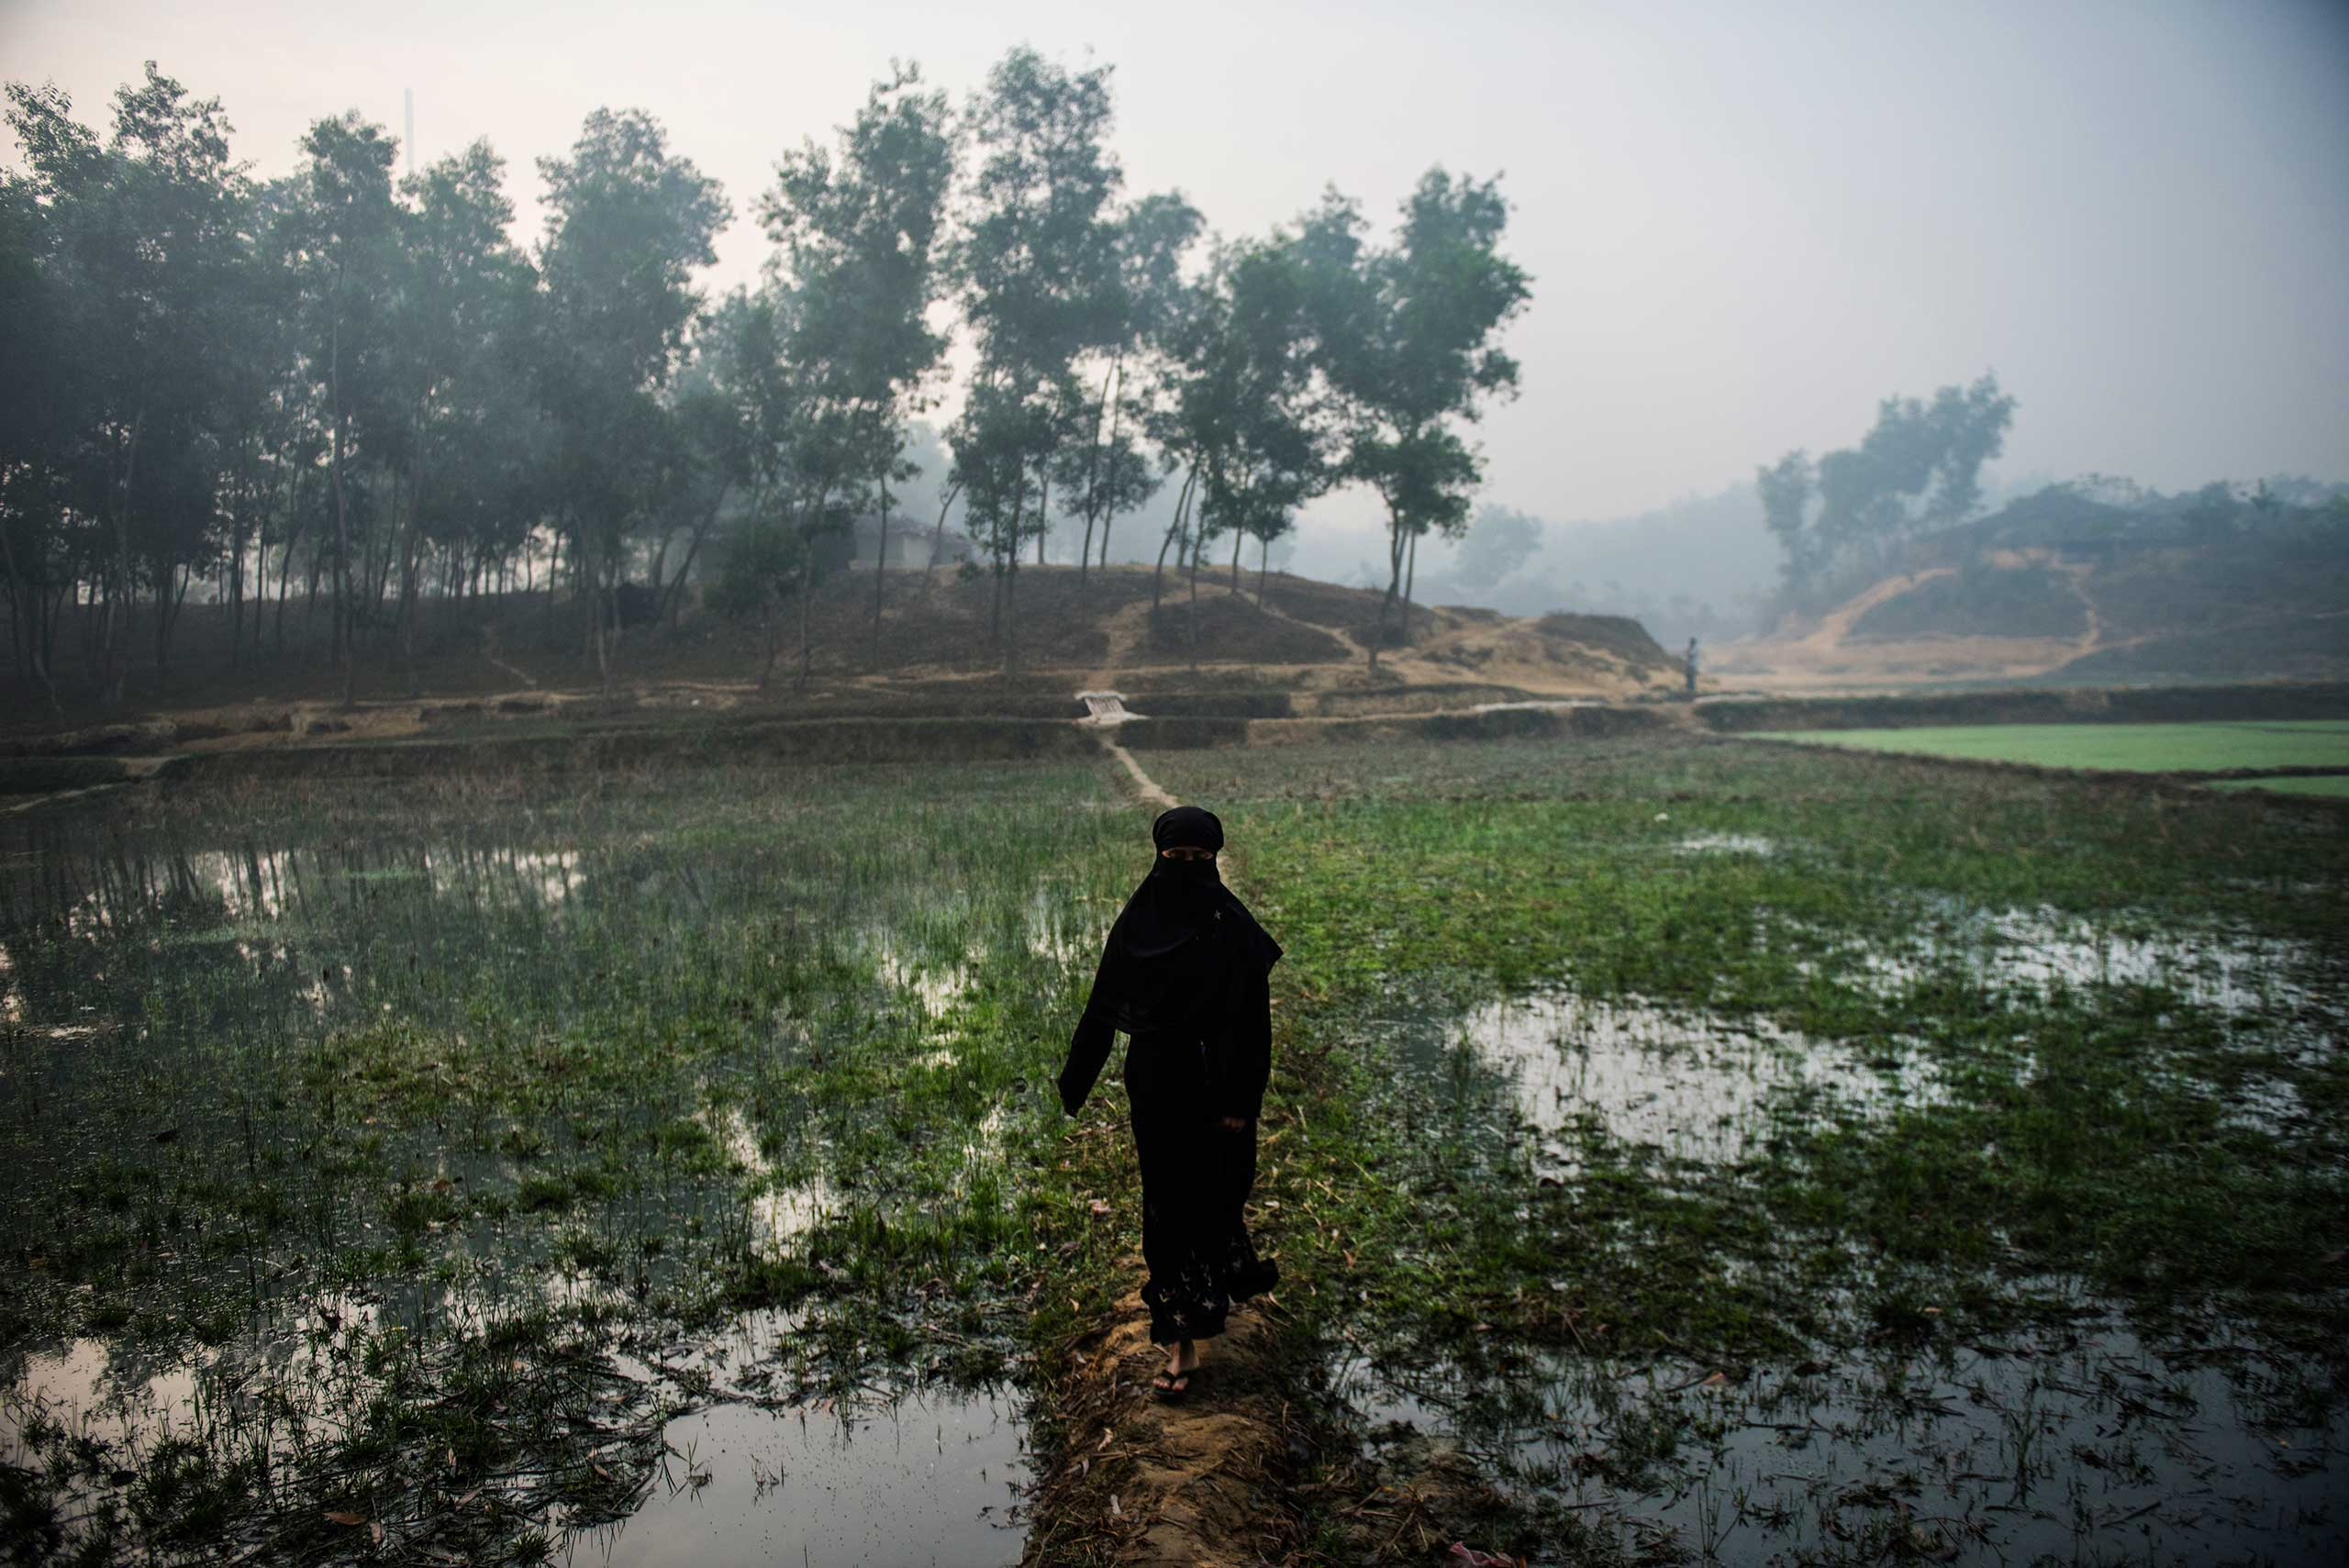 A Rohingya woman walks around the perimeter of the Kutupalang informal camp for unregistered Rohingya refugees from Myanmar in Teknaaf Bangladesh, Jan. 11, 2016.  Beside the Kutupalang camp is a registered camp of 15000 refugees, and the makeshift camp has grown over the years to approximately 40000 unregistered refugees. The inhabitants are provided with no services: there are rudimentary, unsanitary outdoor latrines, raw sewage streaming through the camp, no food distributions, and lack of medical care.